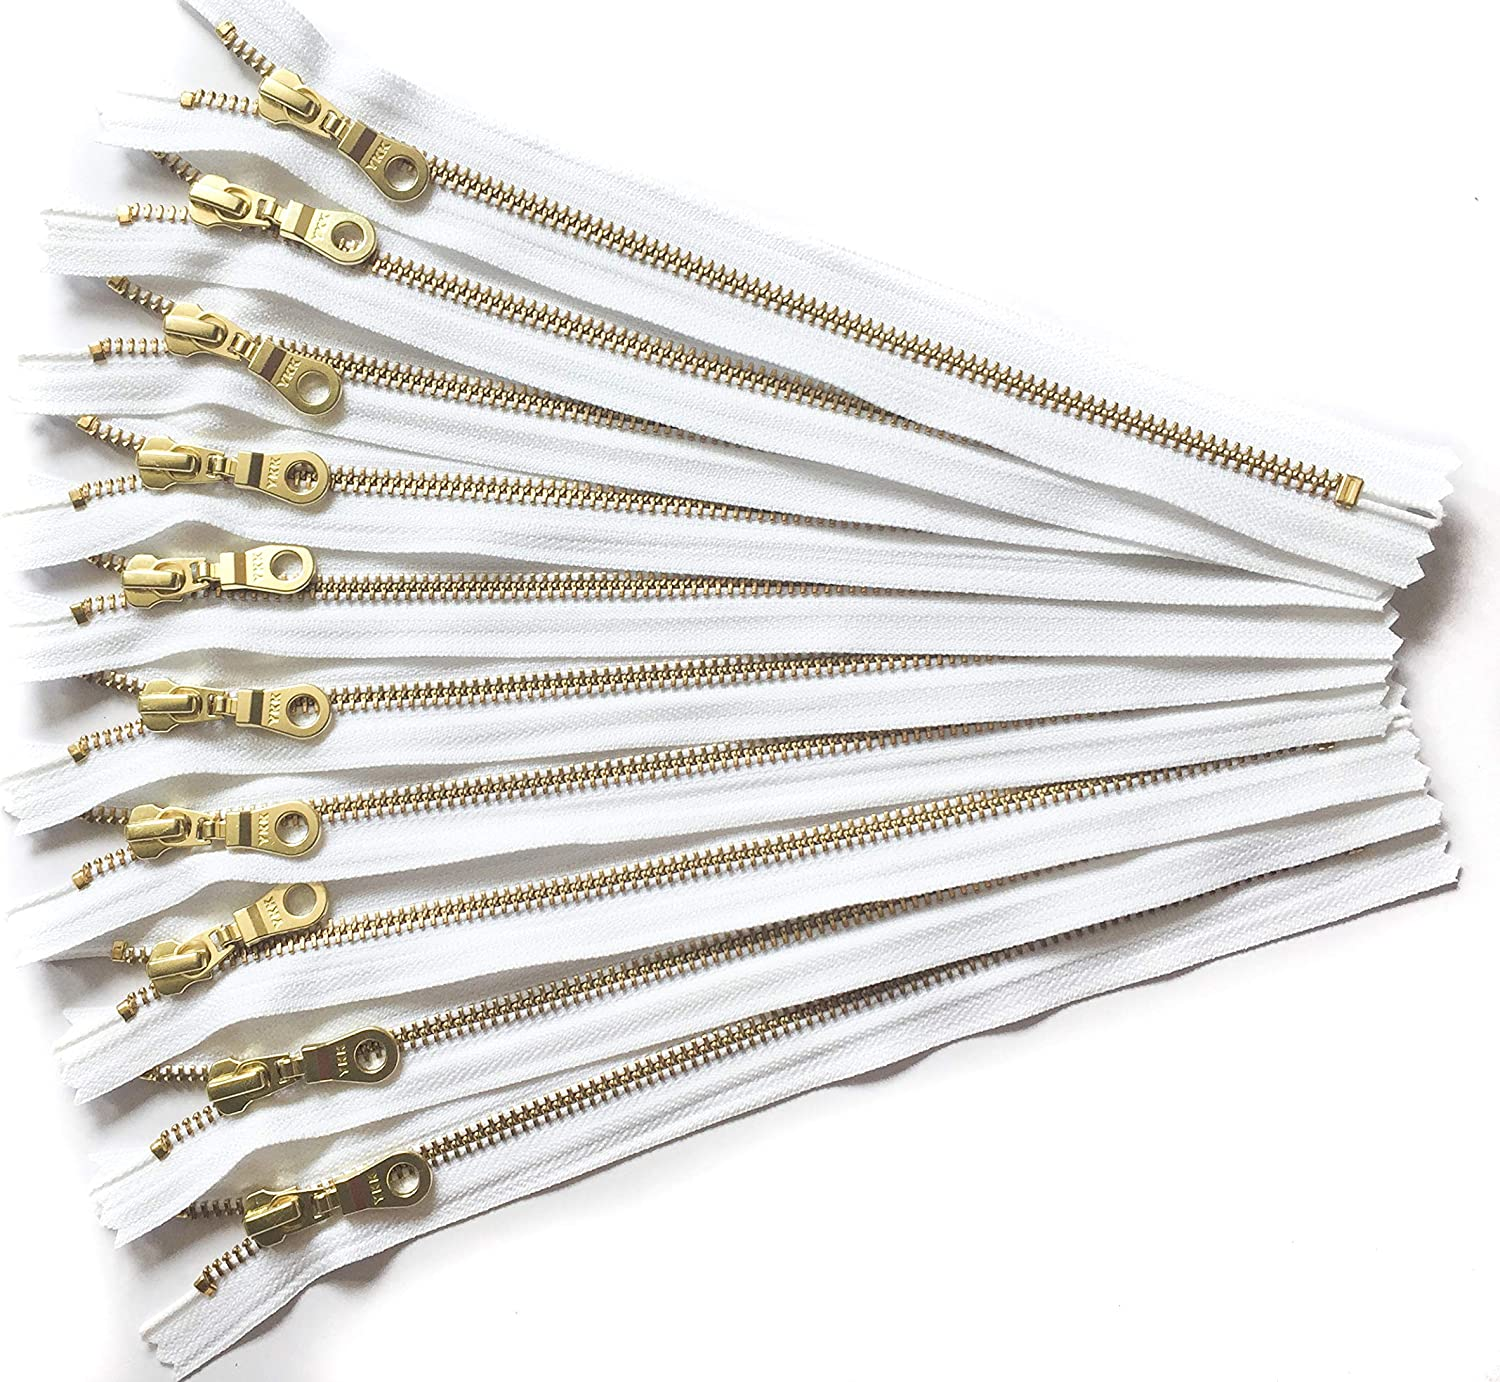 YKK Gold Metal Zippers with Donut Pull 14 Inch Number 5 in White Set of 12 Pieces by Craftbot